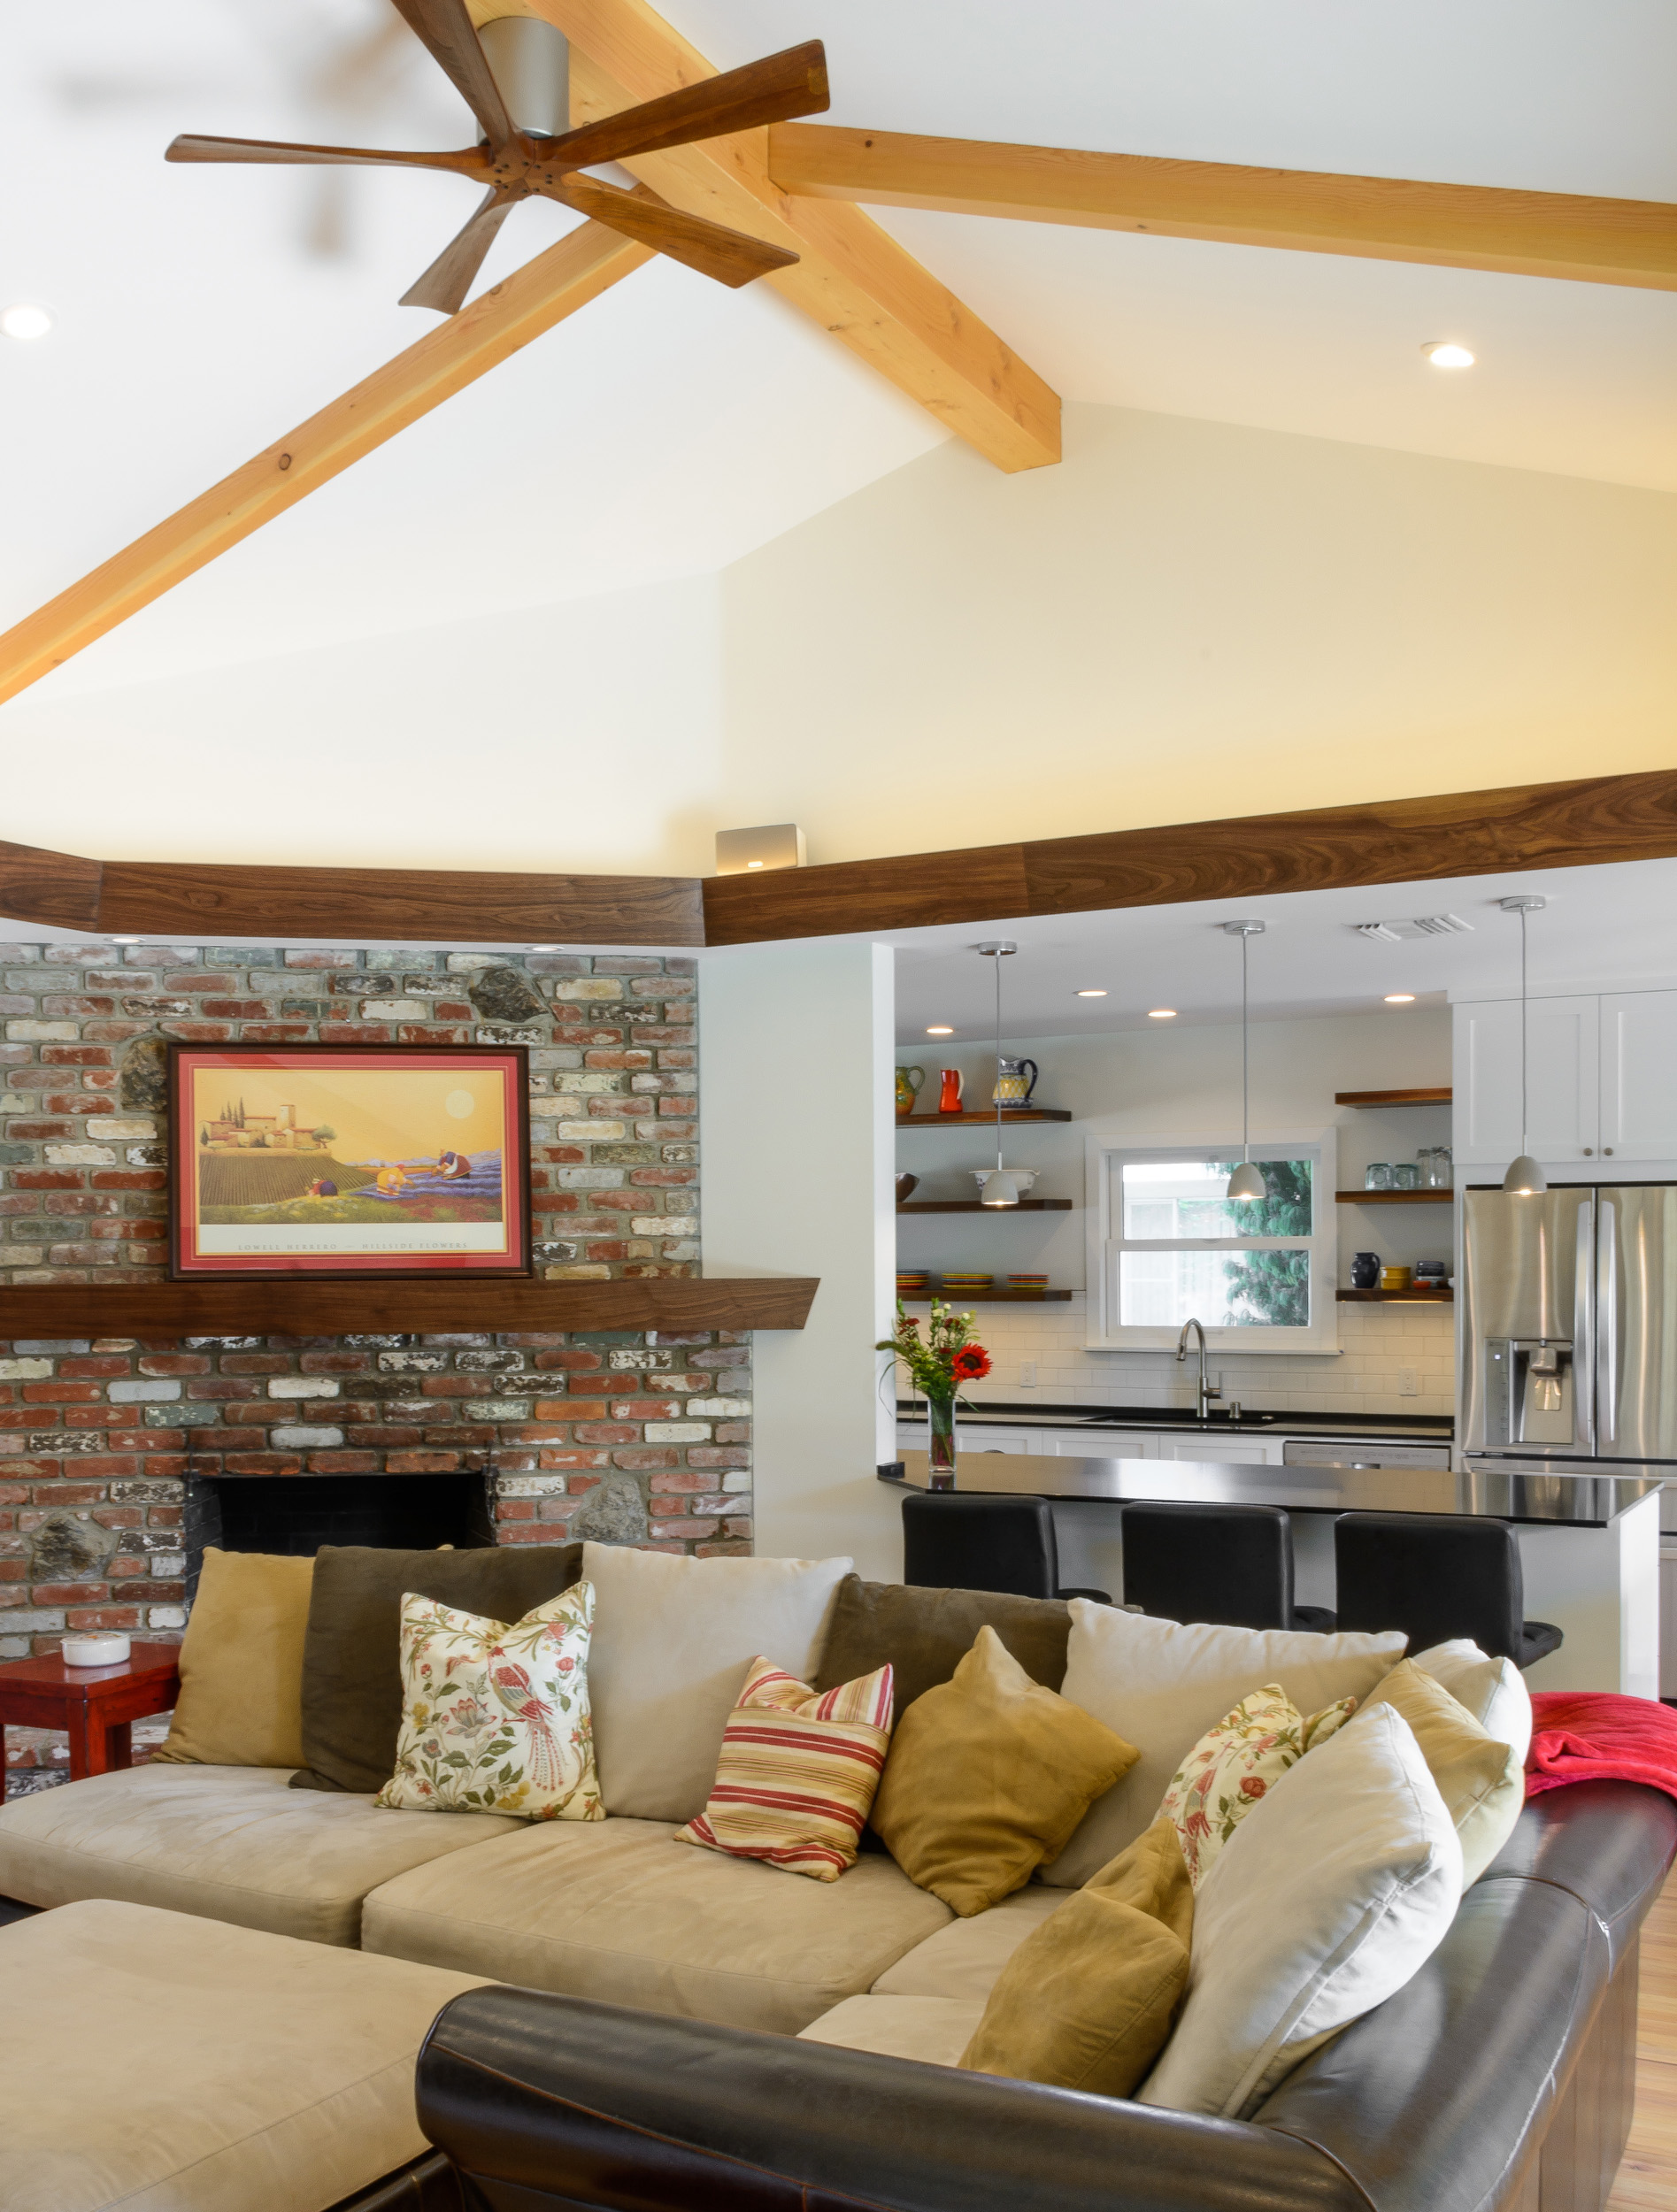 Original brick fireplace with a walnut mantel